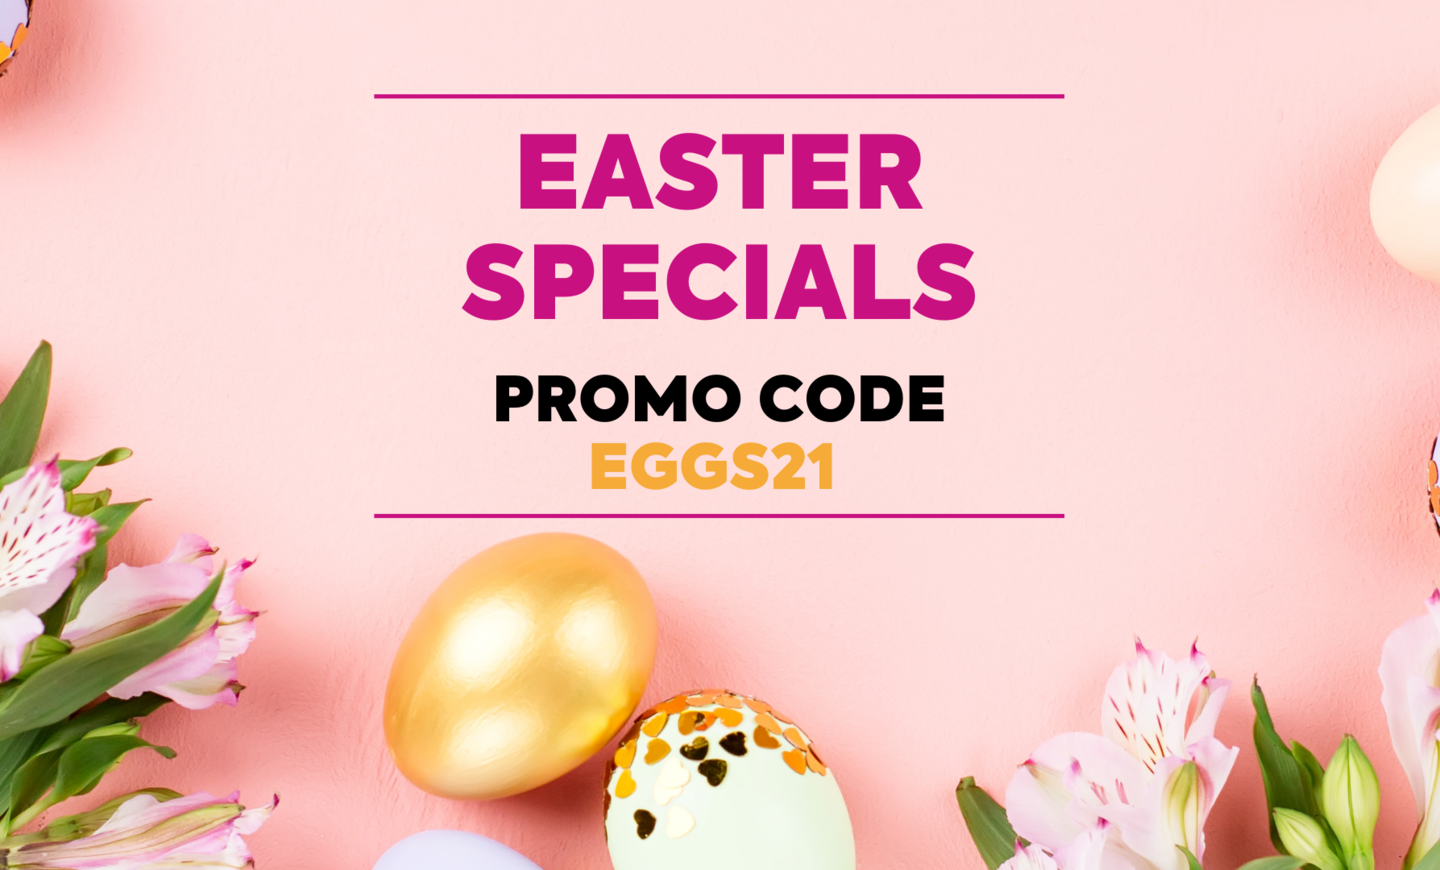 Easter specials - cover site.png